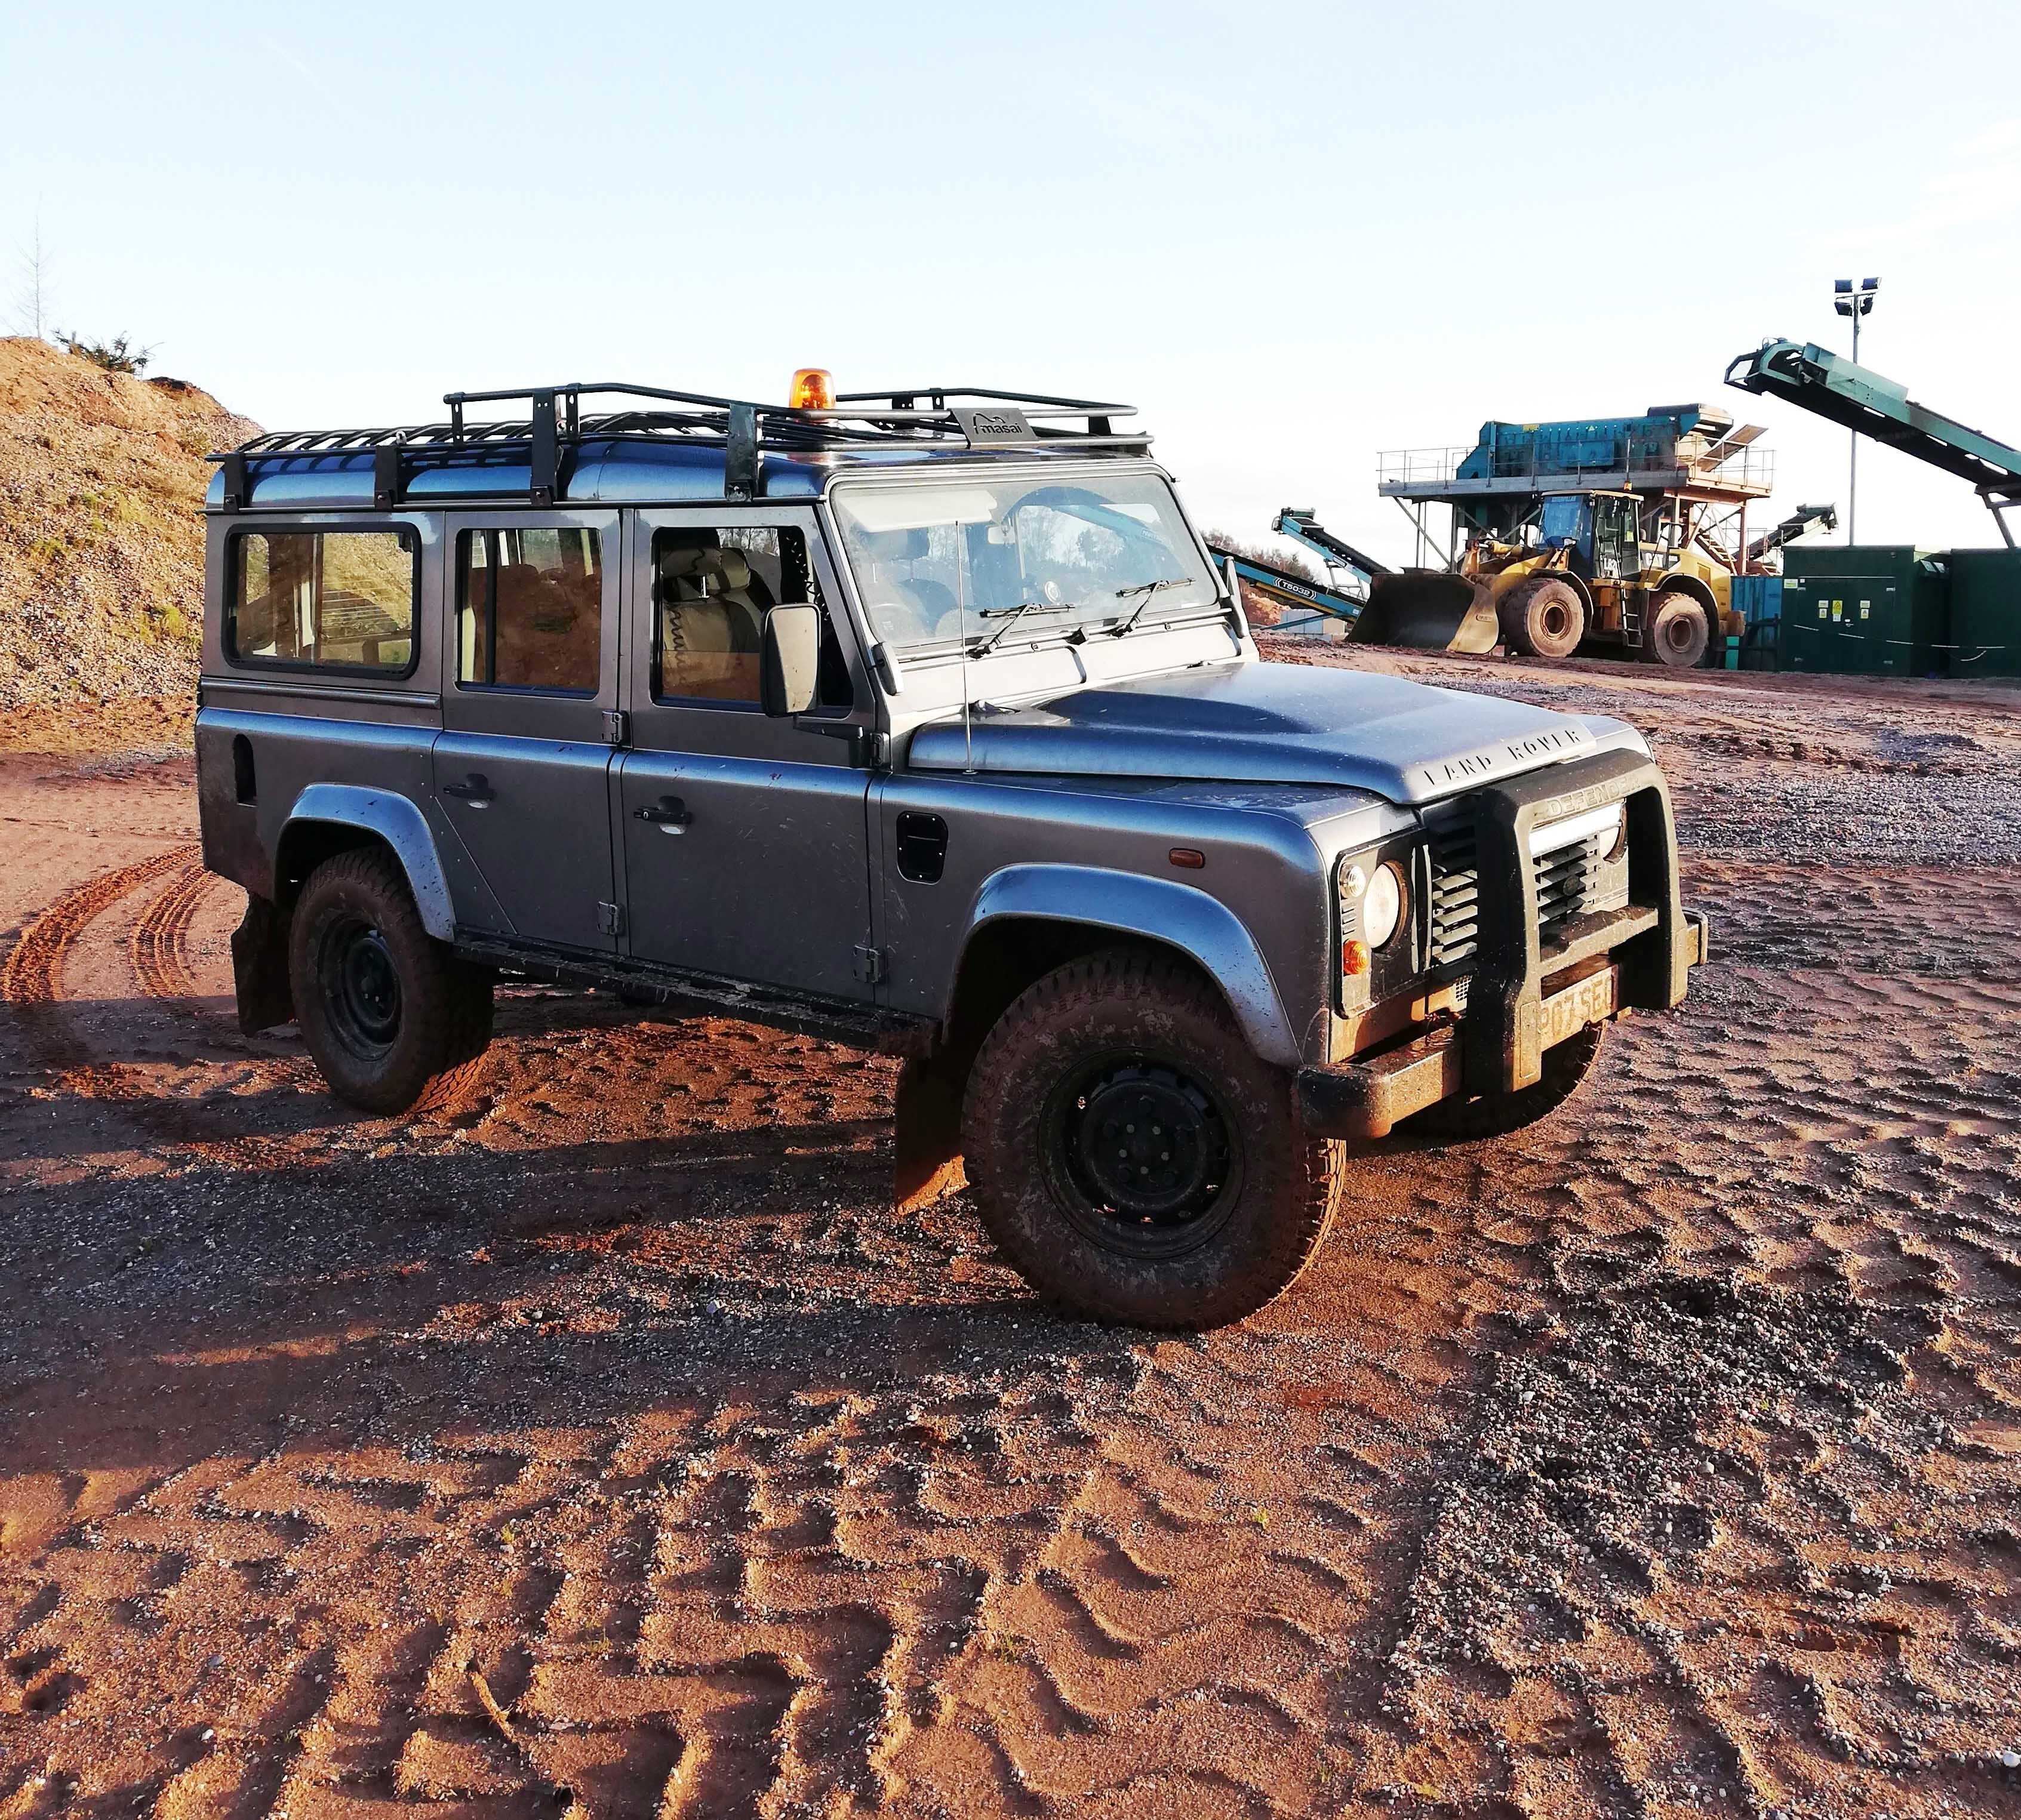 Our Land Rover Defender to get around the quarries